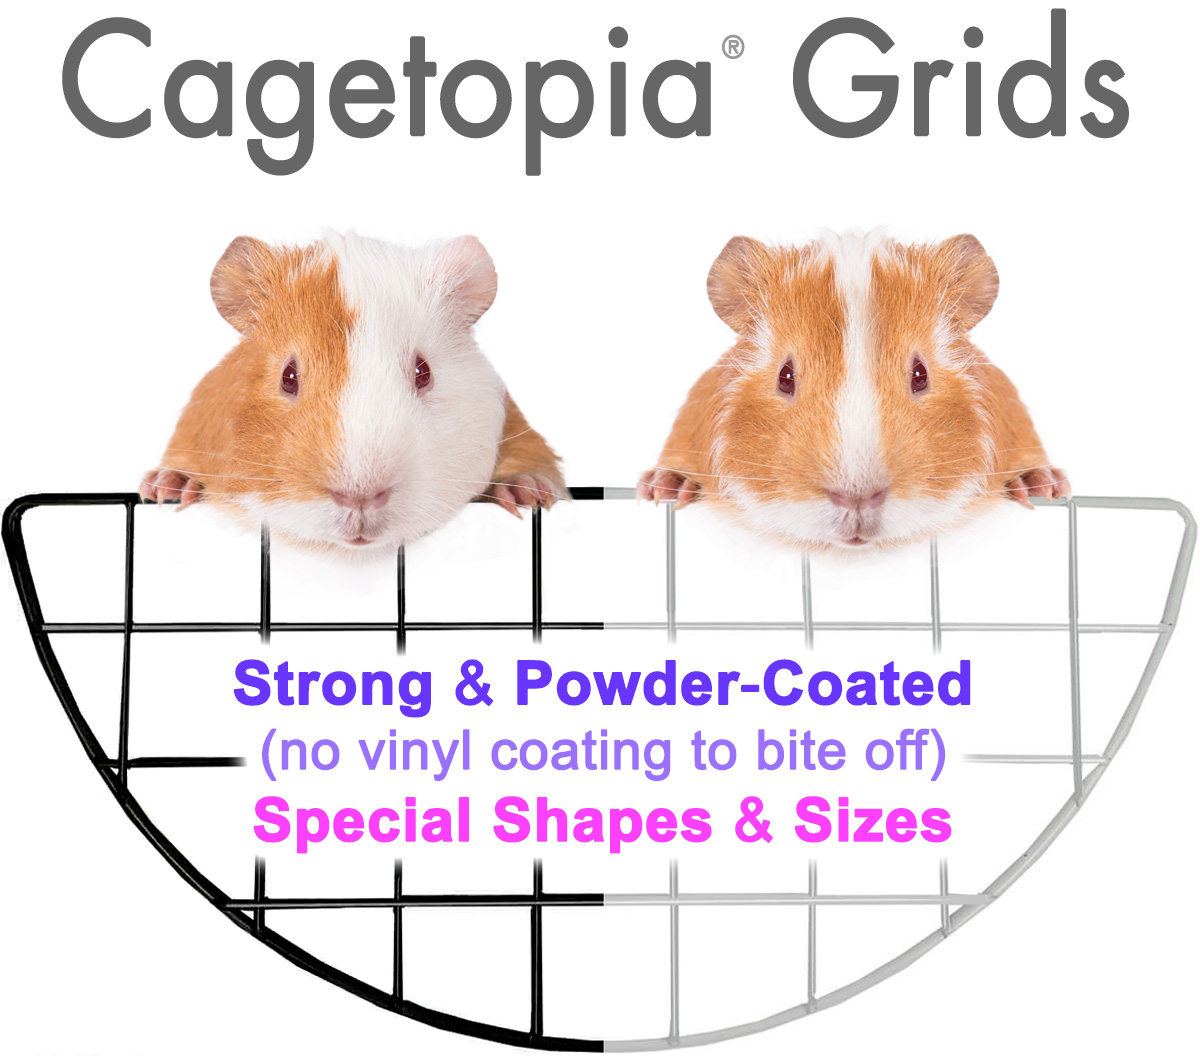 Cagetopia Grids for Guinea Pig C&C Cages